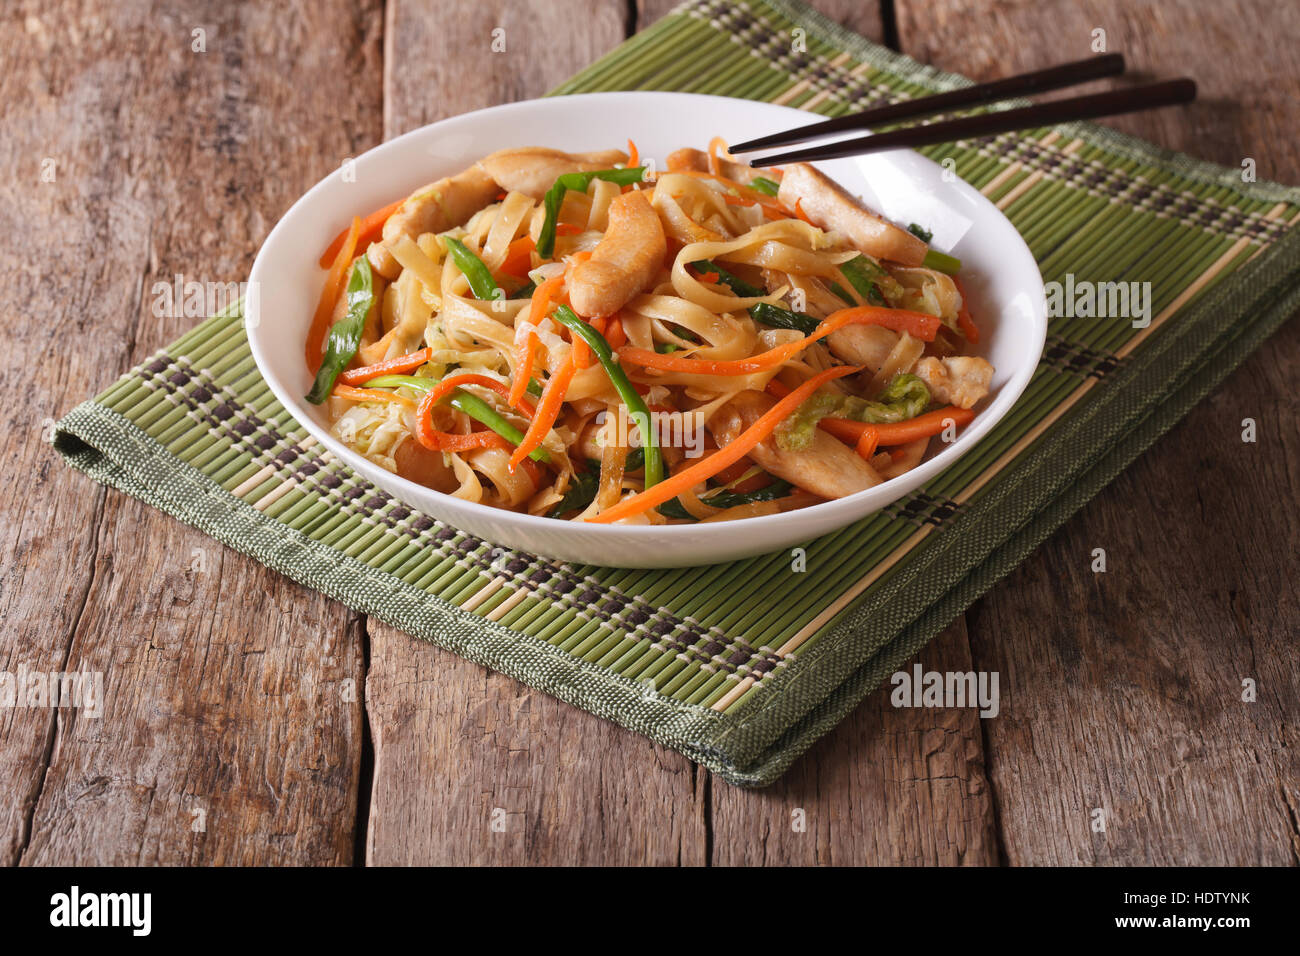 Chow mein with chicken and vegetables on the table. horizontal - Stock Image